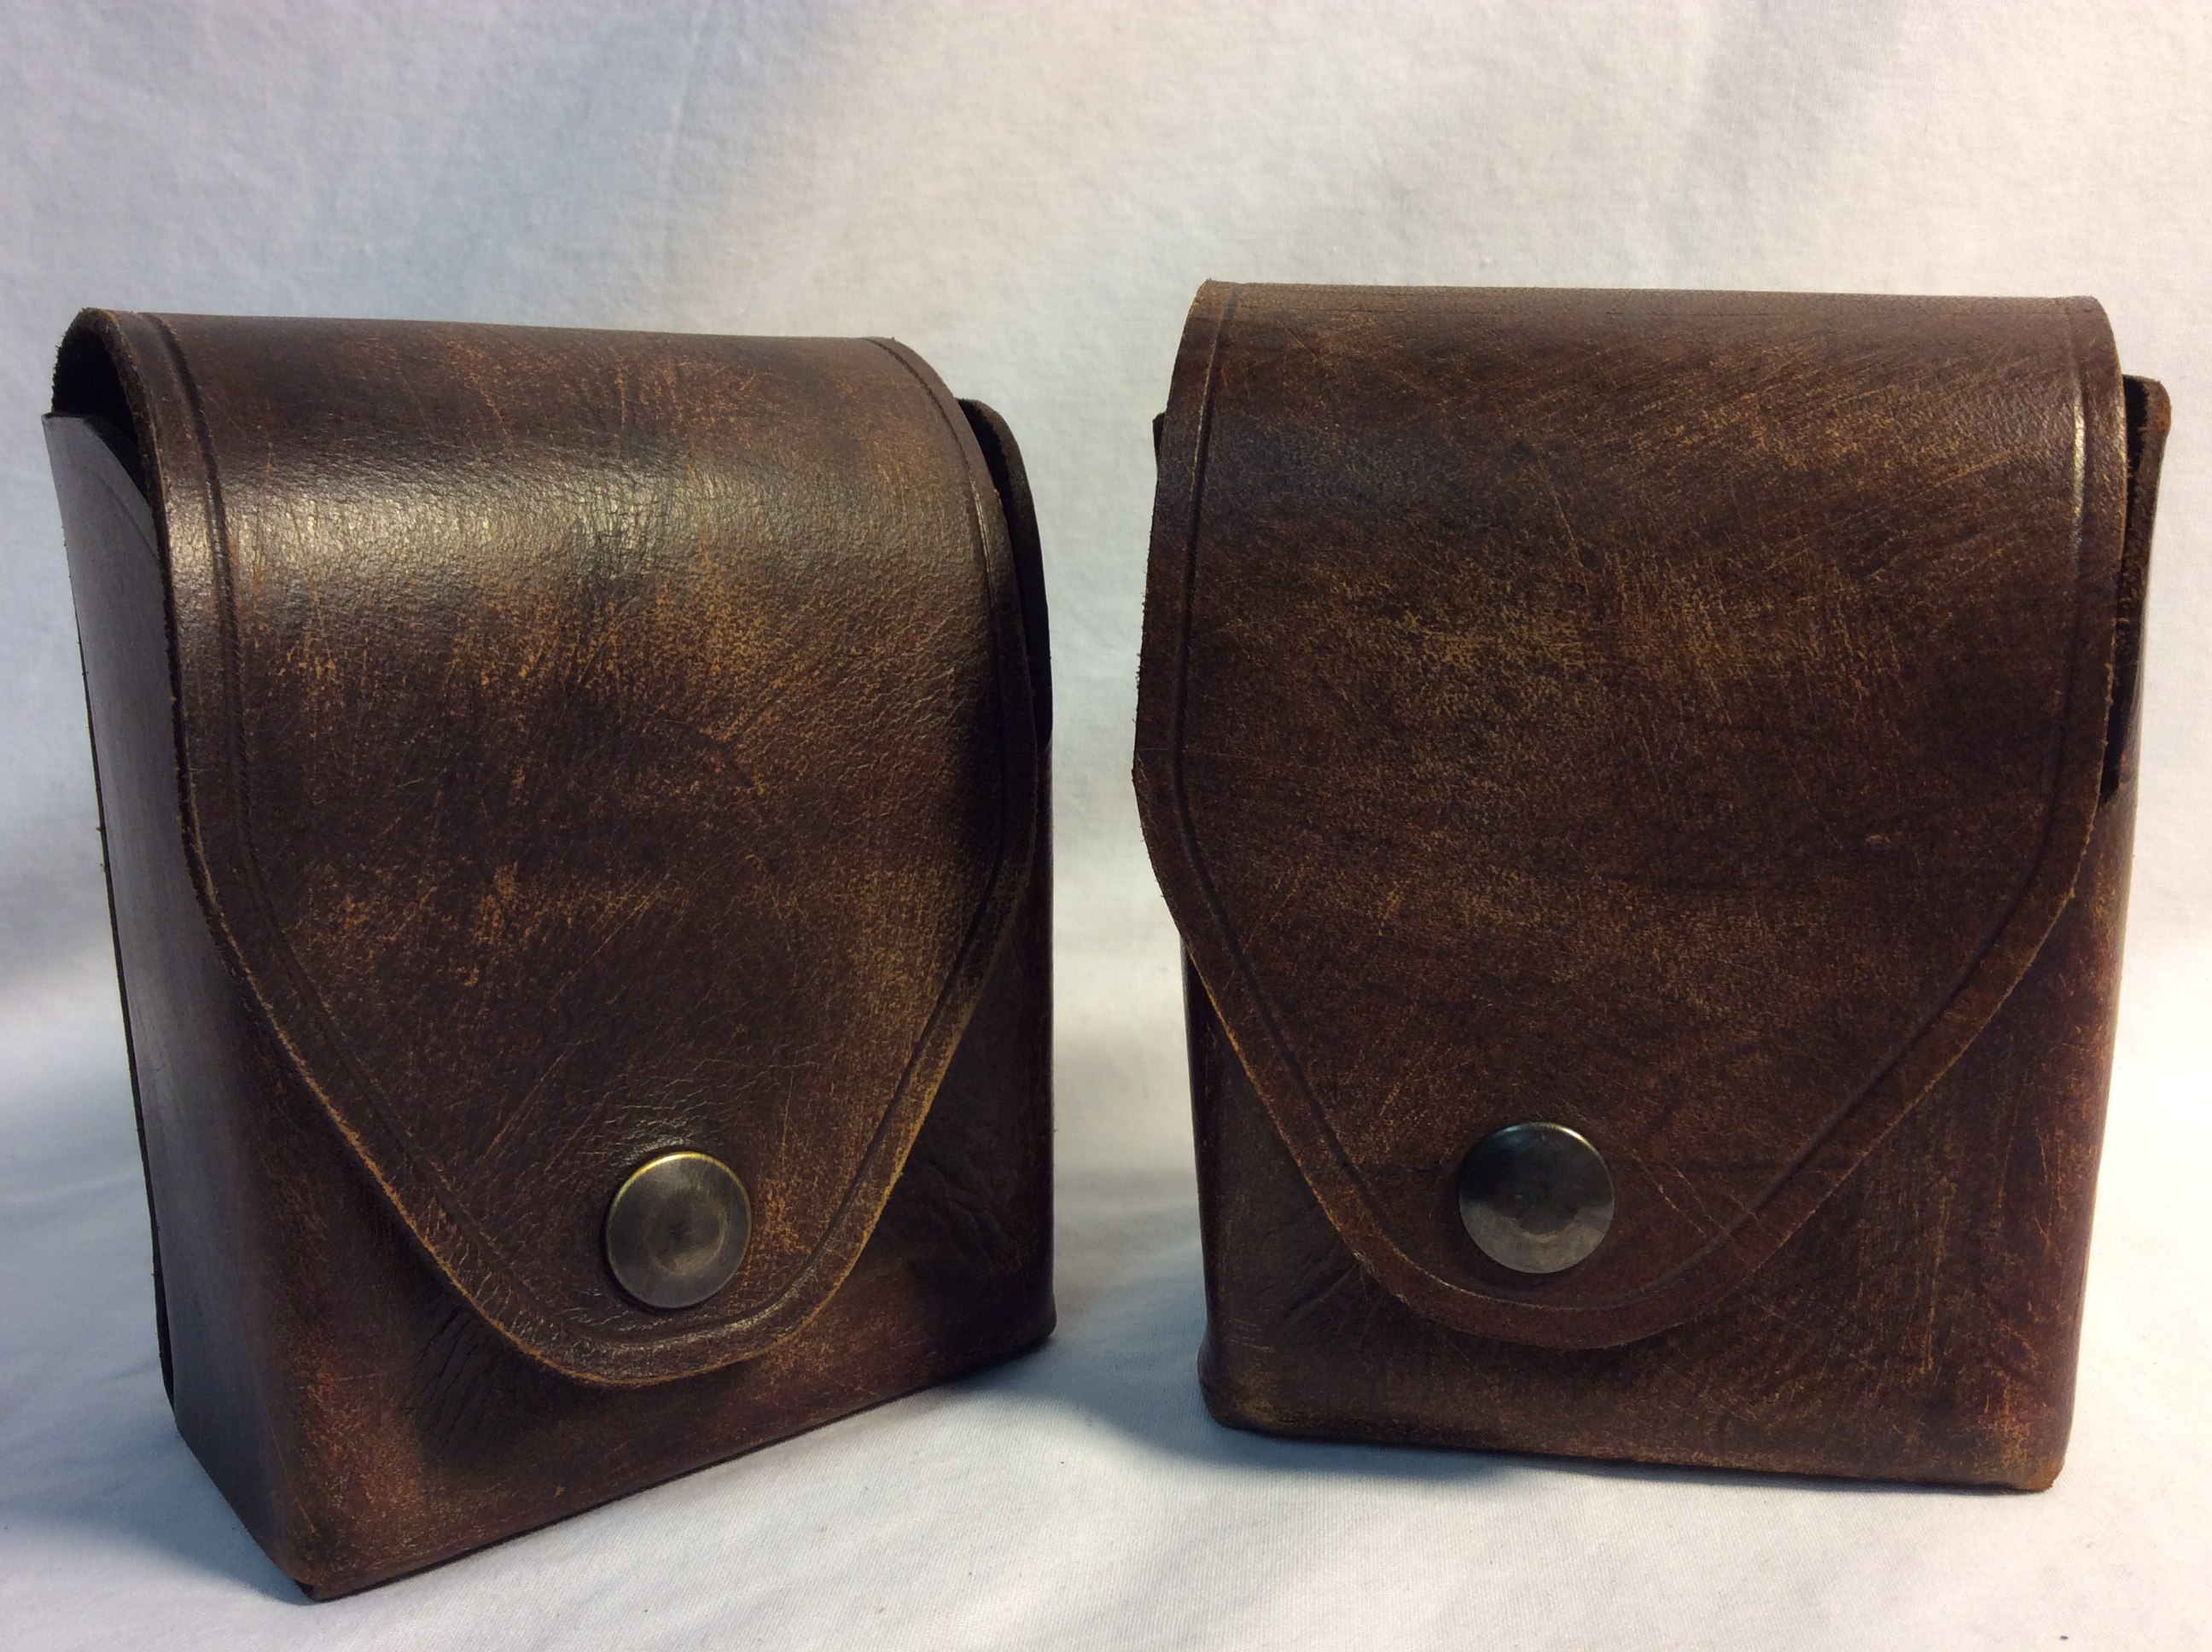 Vintage belt leather pouch